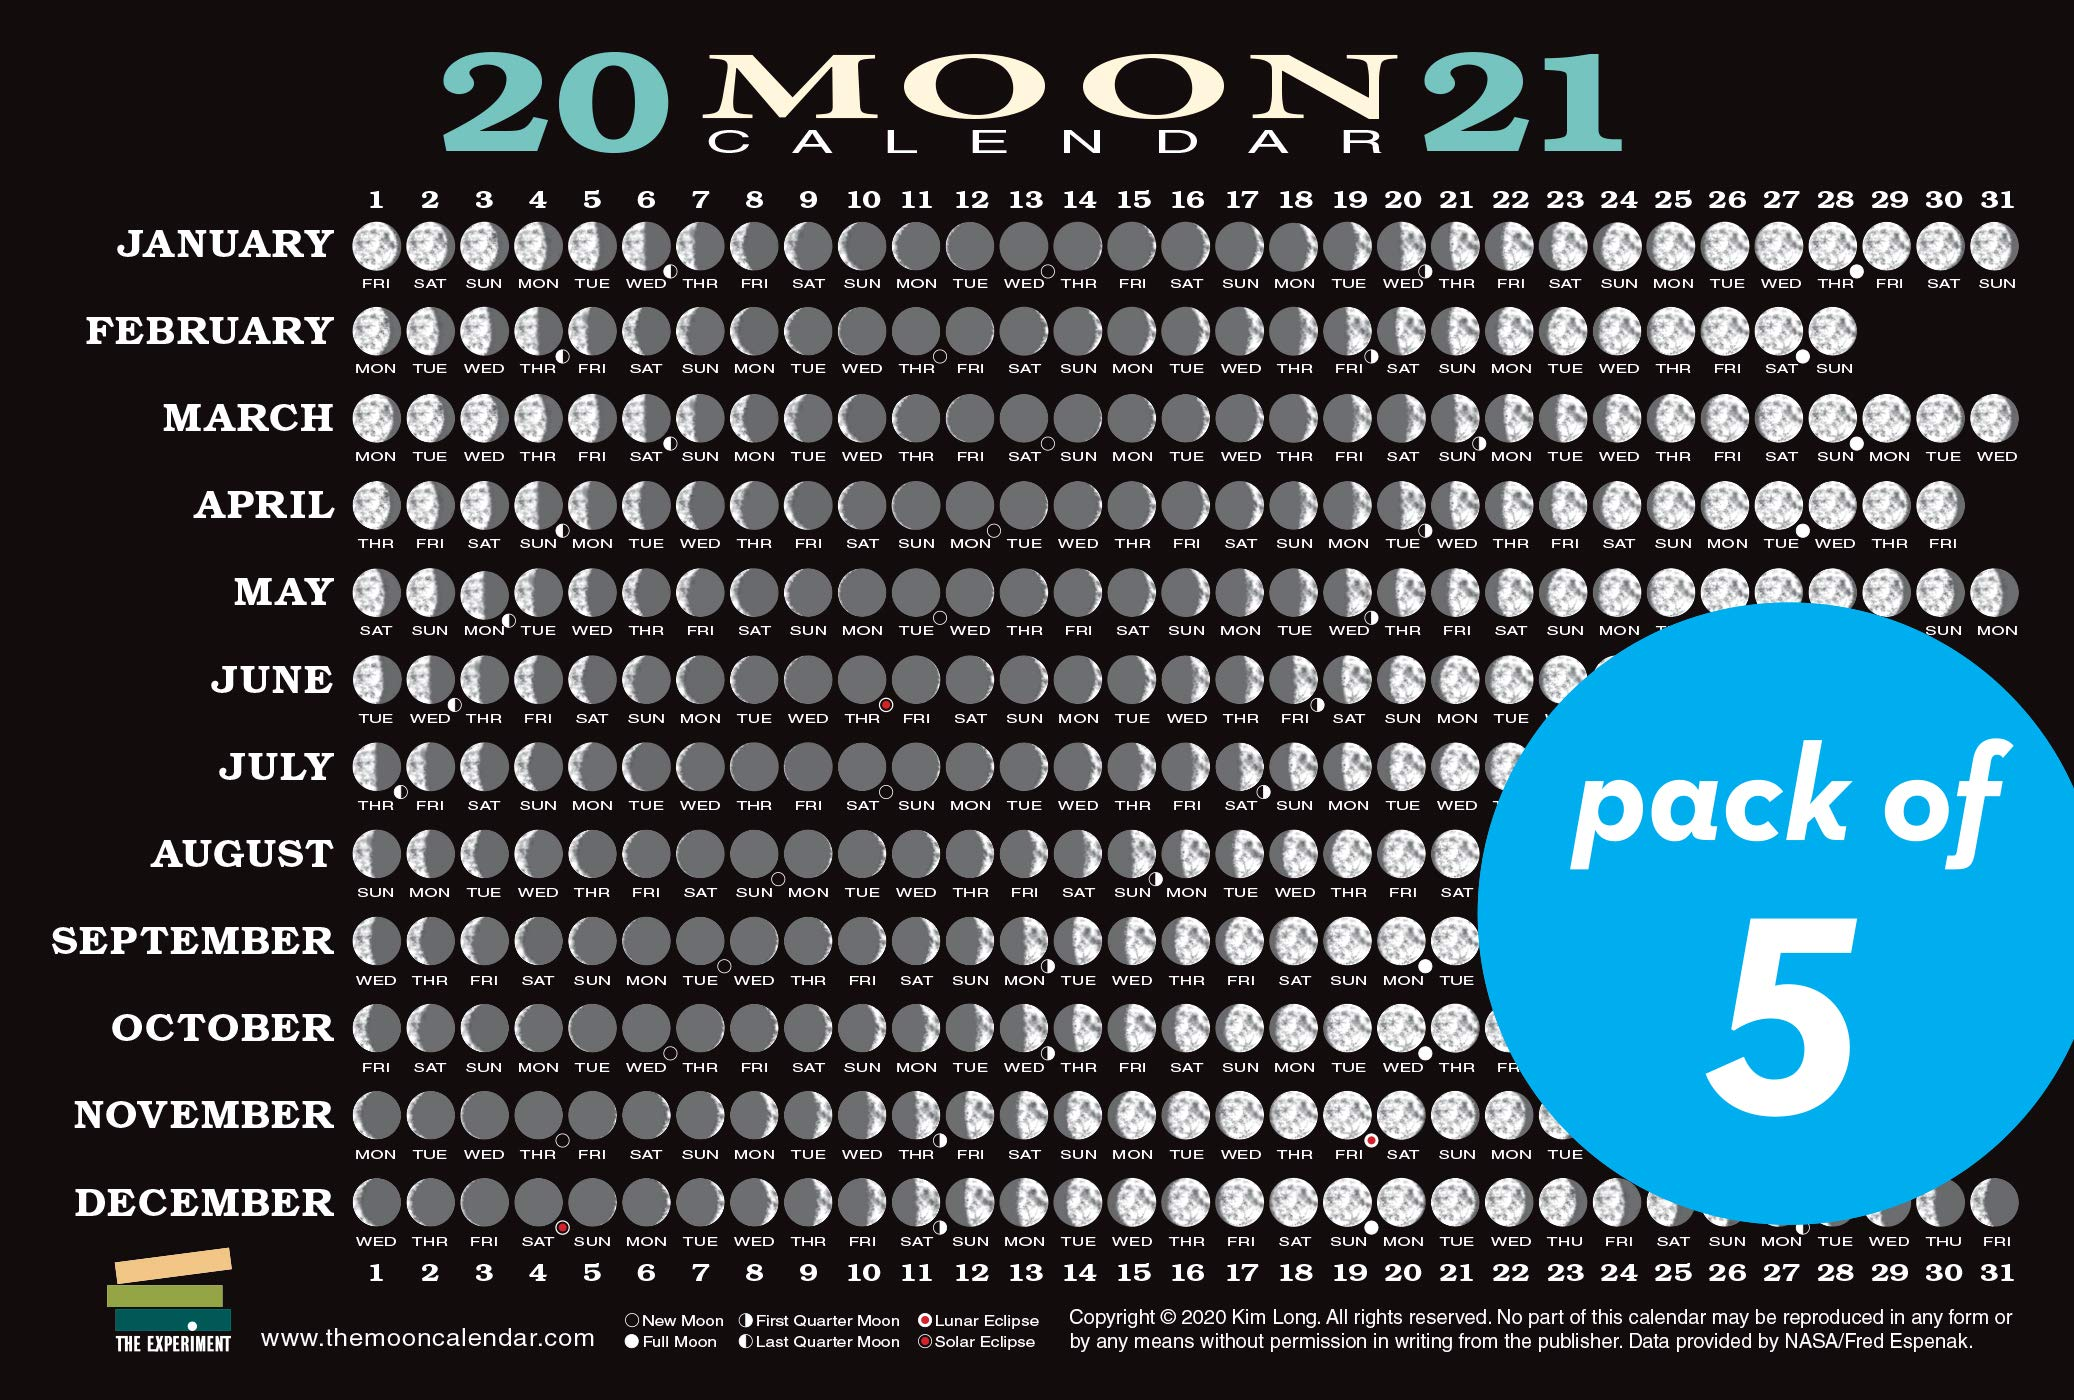 2021 Moon Calendar Card (5 pack): Lunar Phases, Eclipses, and More